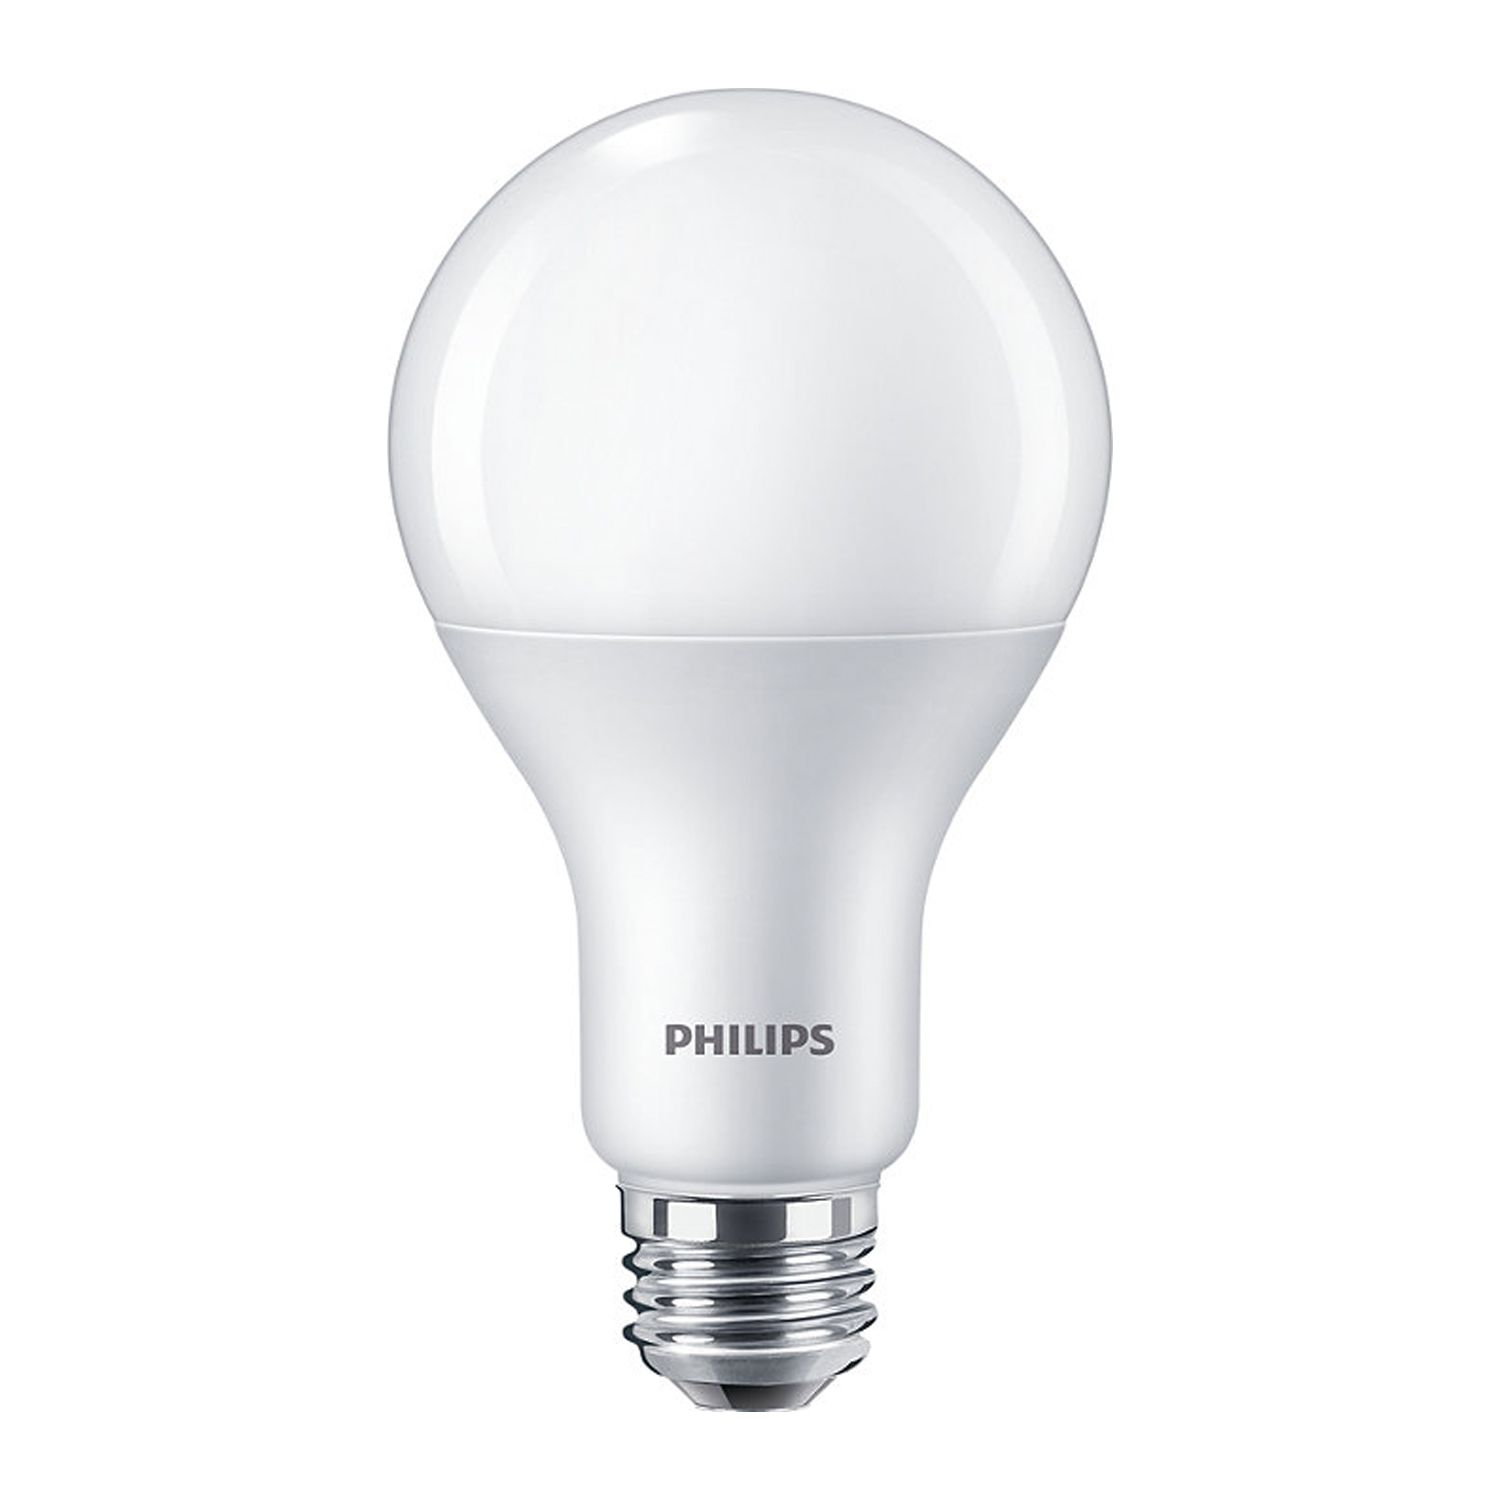 Philips Master LEDbulb E27 14W 927 A67 Frosted | Best Colour Rendering - Extra Warm White - Replaces 100W